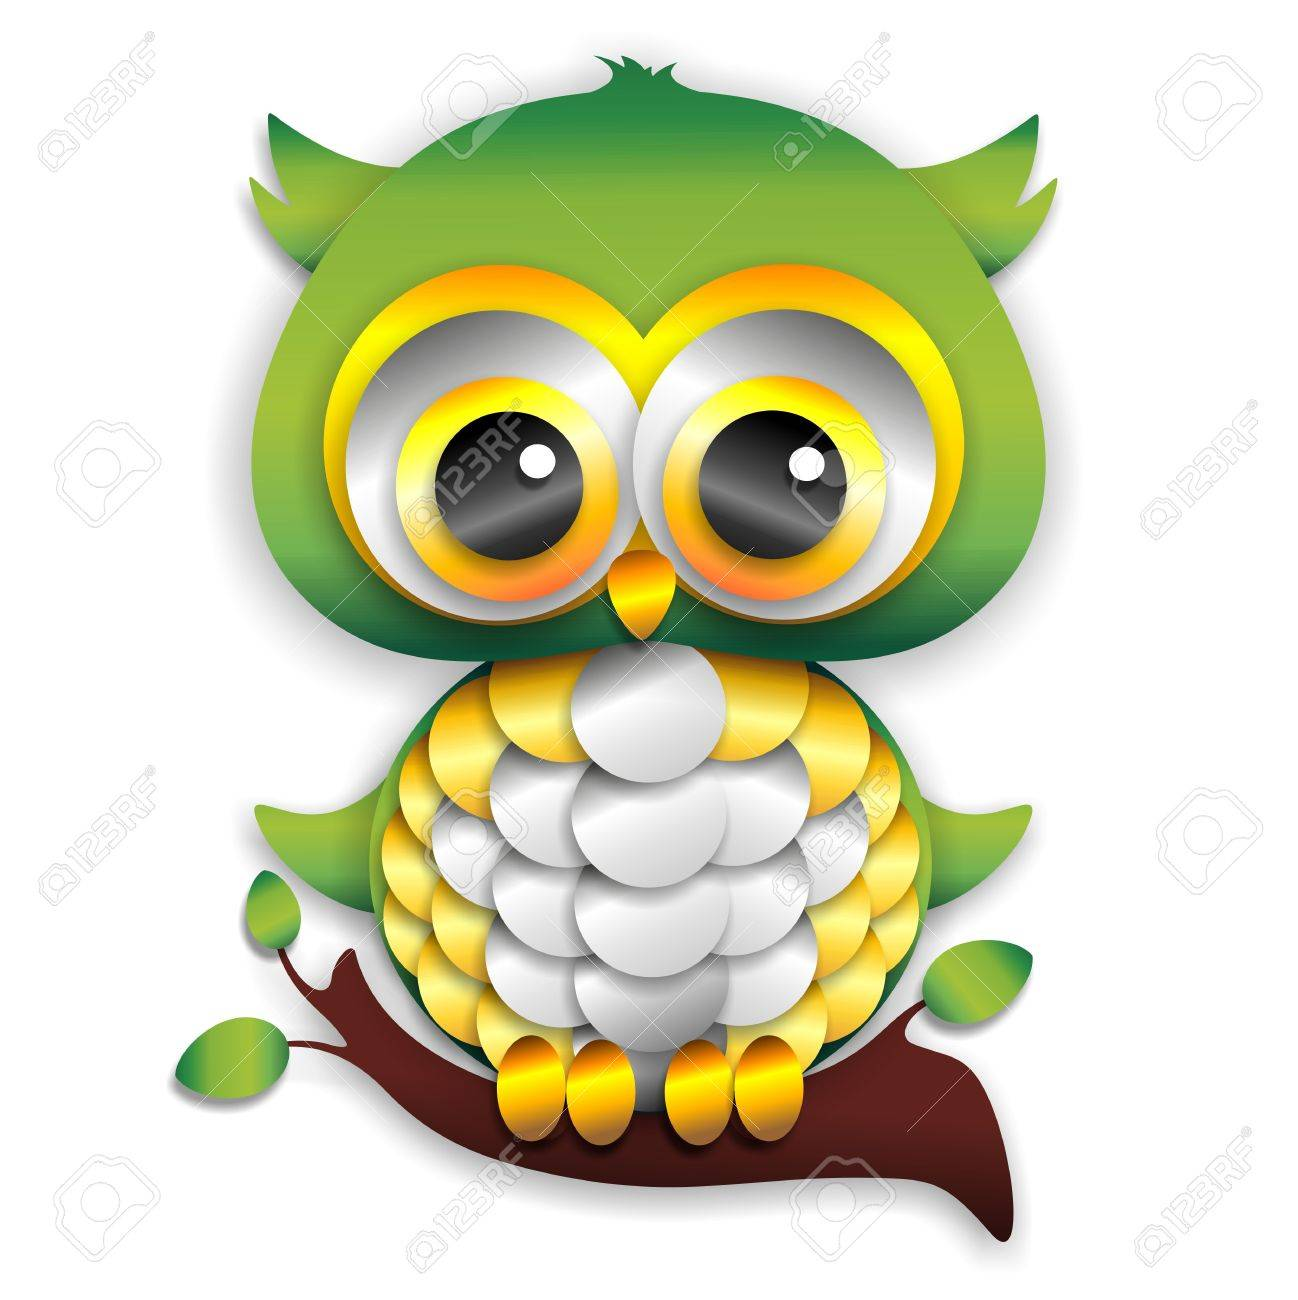 Baby owl paper craft royalty free cliparts vectors and stock baby owl paper craft stock vector 17613848 jeuxipadfo Image collections